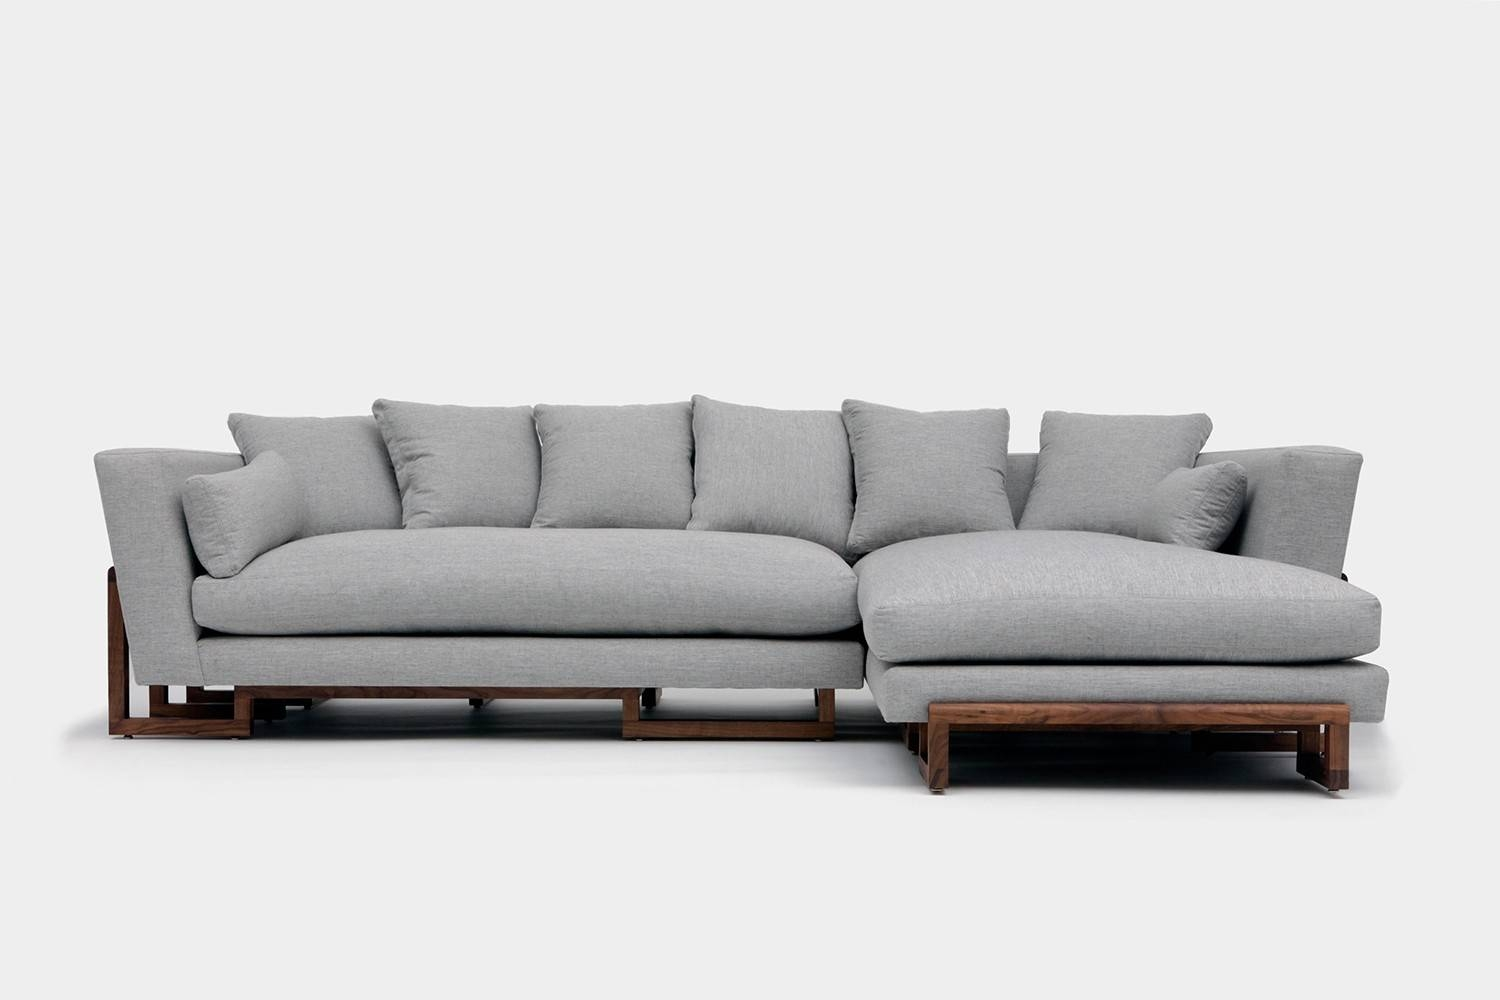 Sofas + Lounge Chairs - Furniture for Sofa Lounge Chairs (Image 24 of 30)